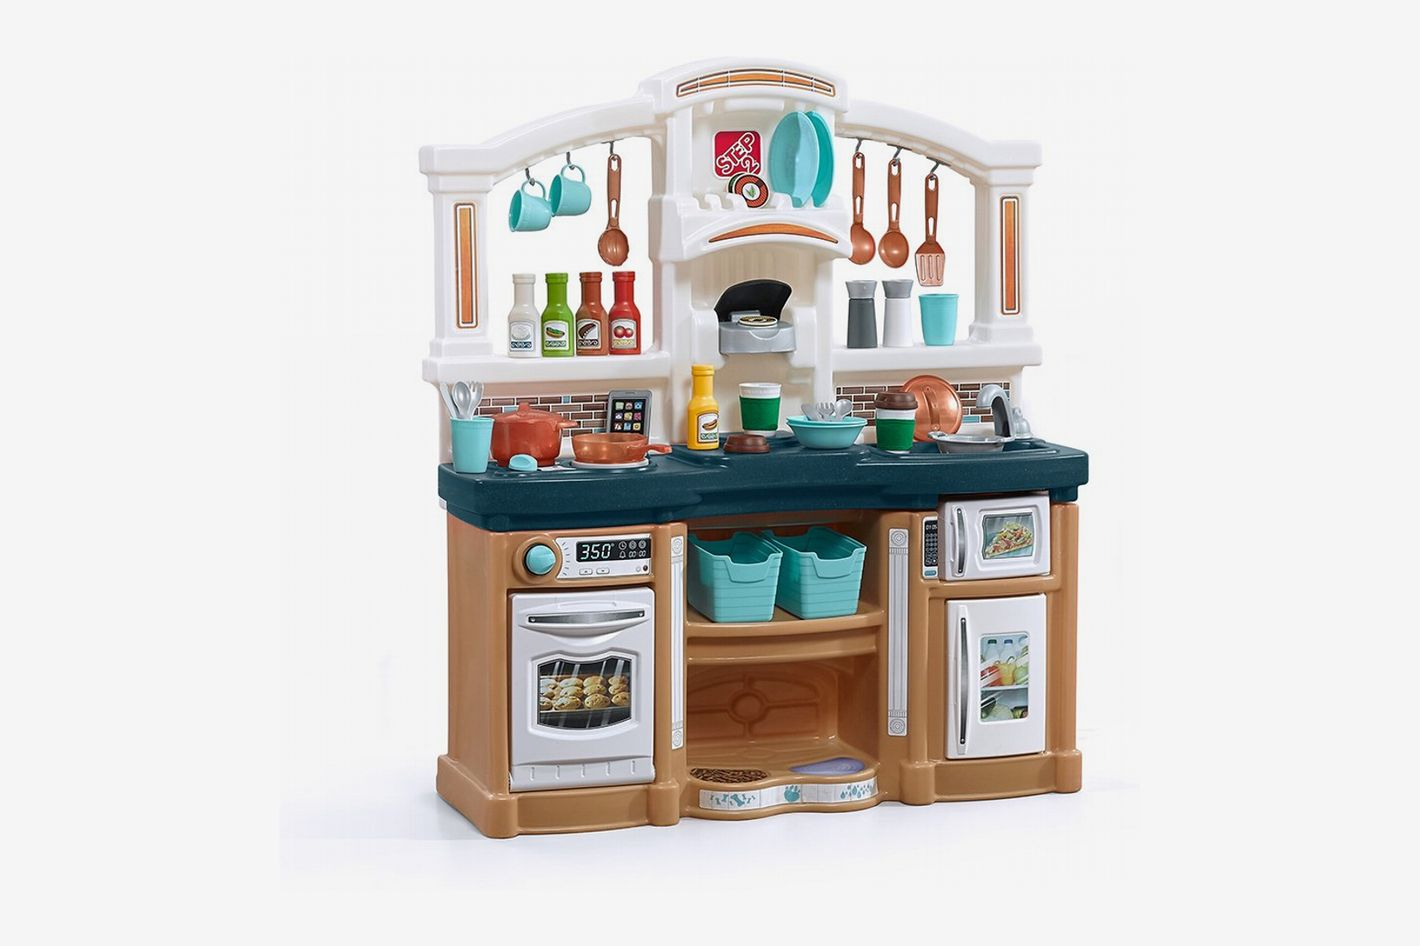 10 Best Toy Kitchen Sets: 2019